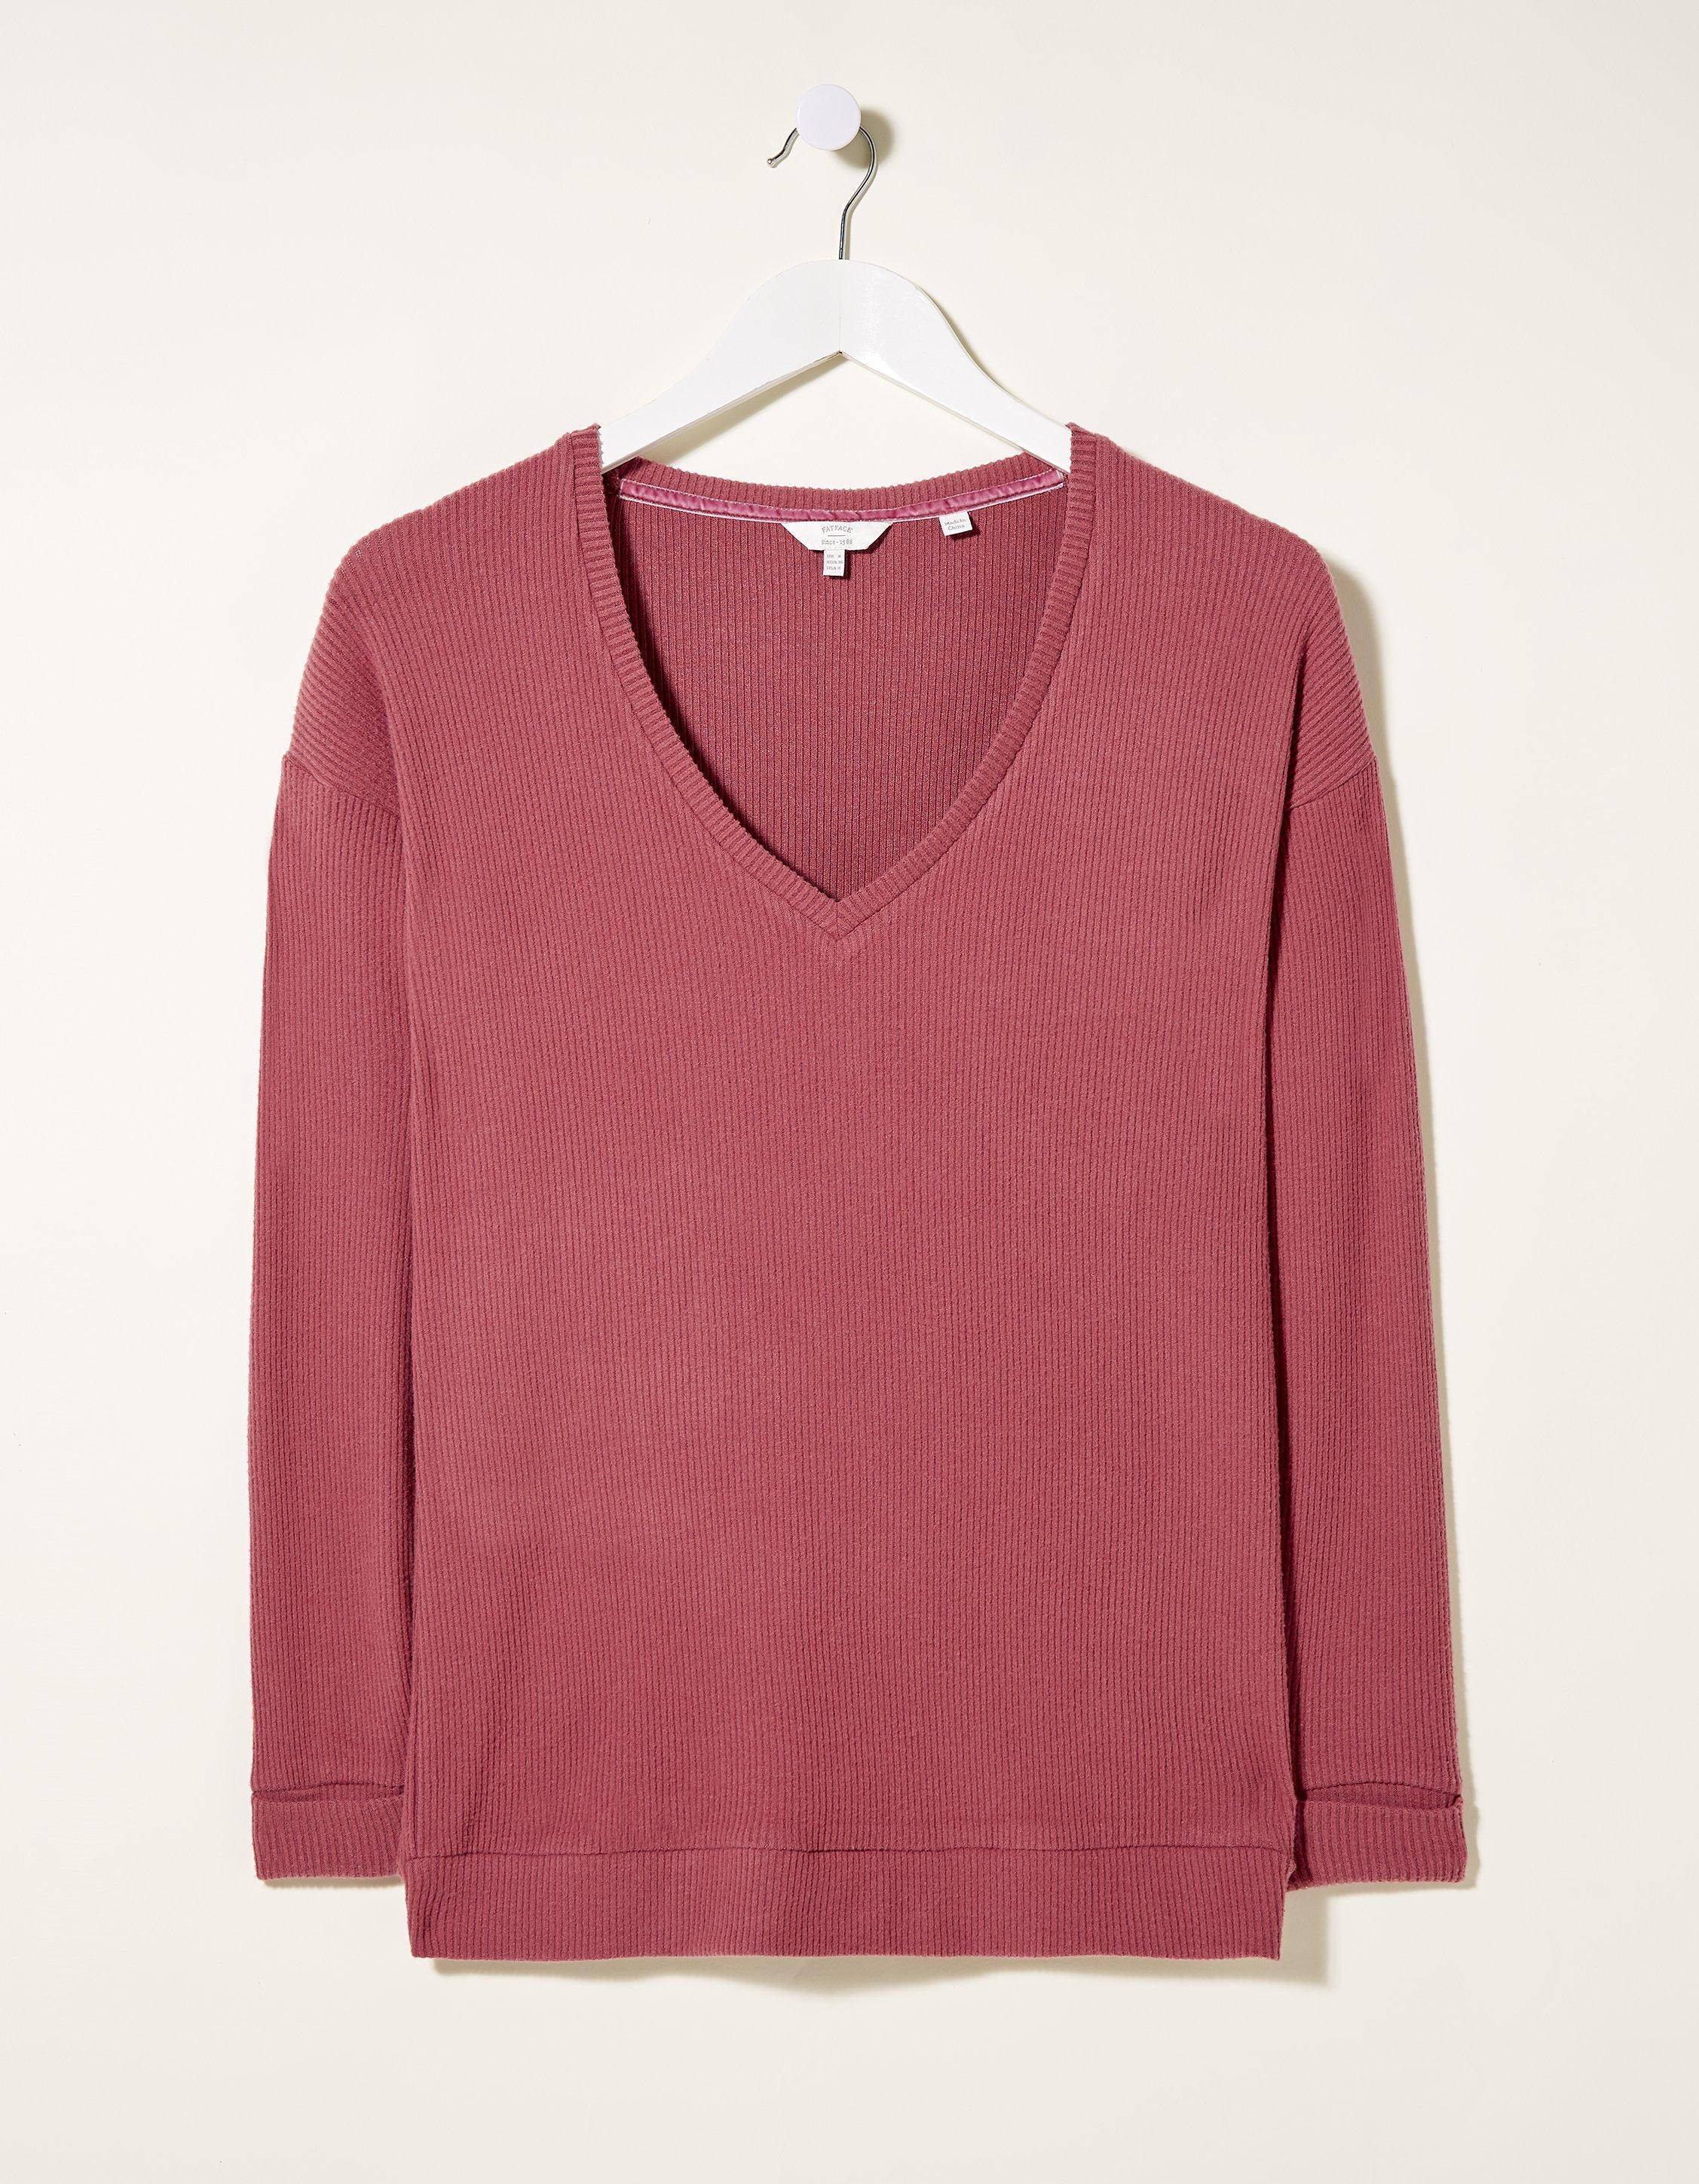 Fat Face Supersoft V Neck Rib Top  - Size: 2